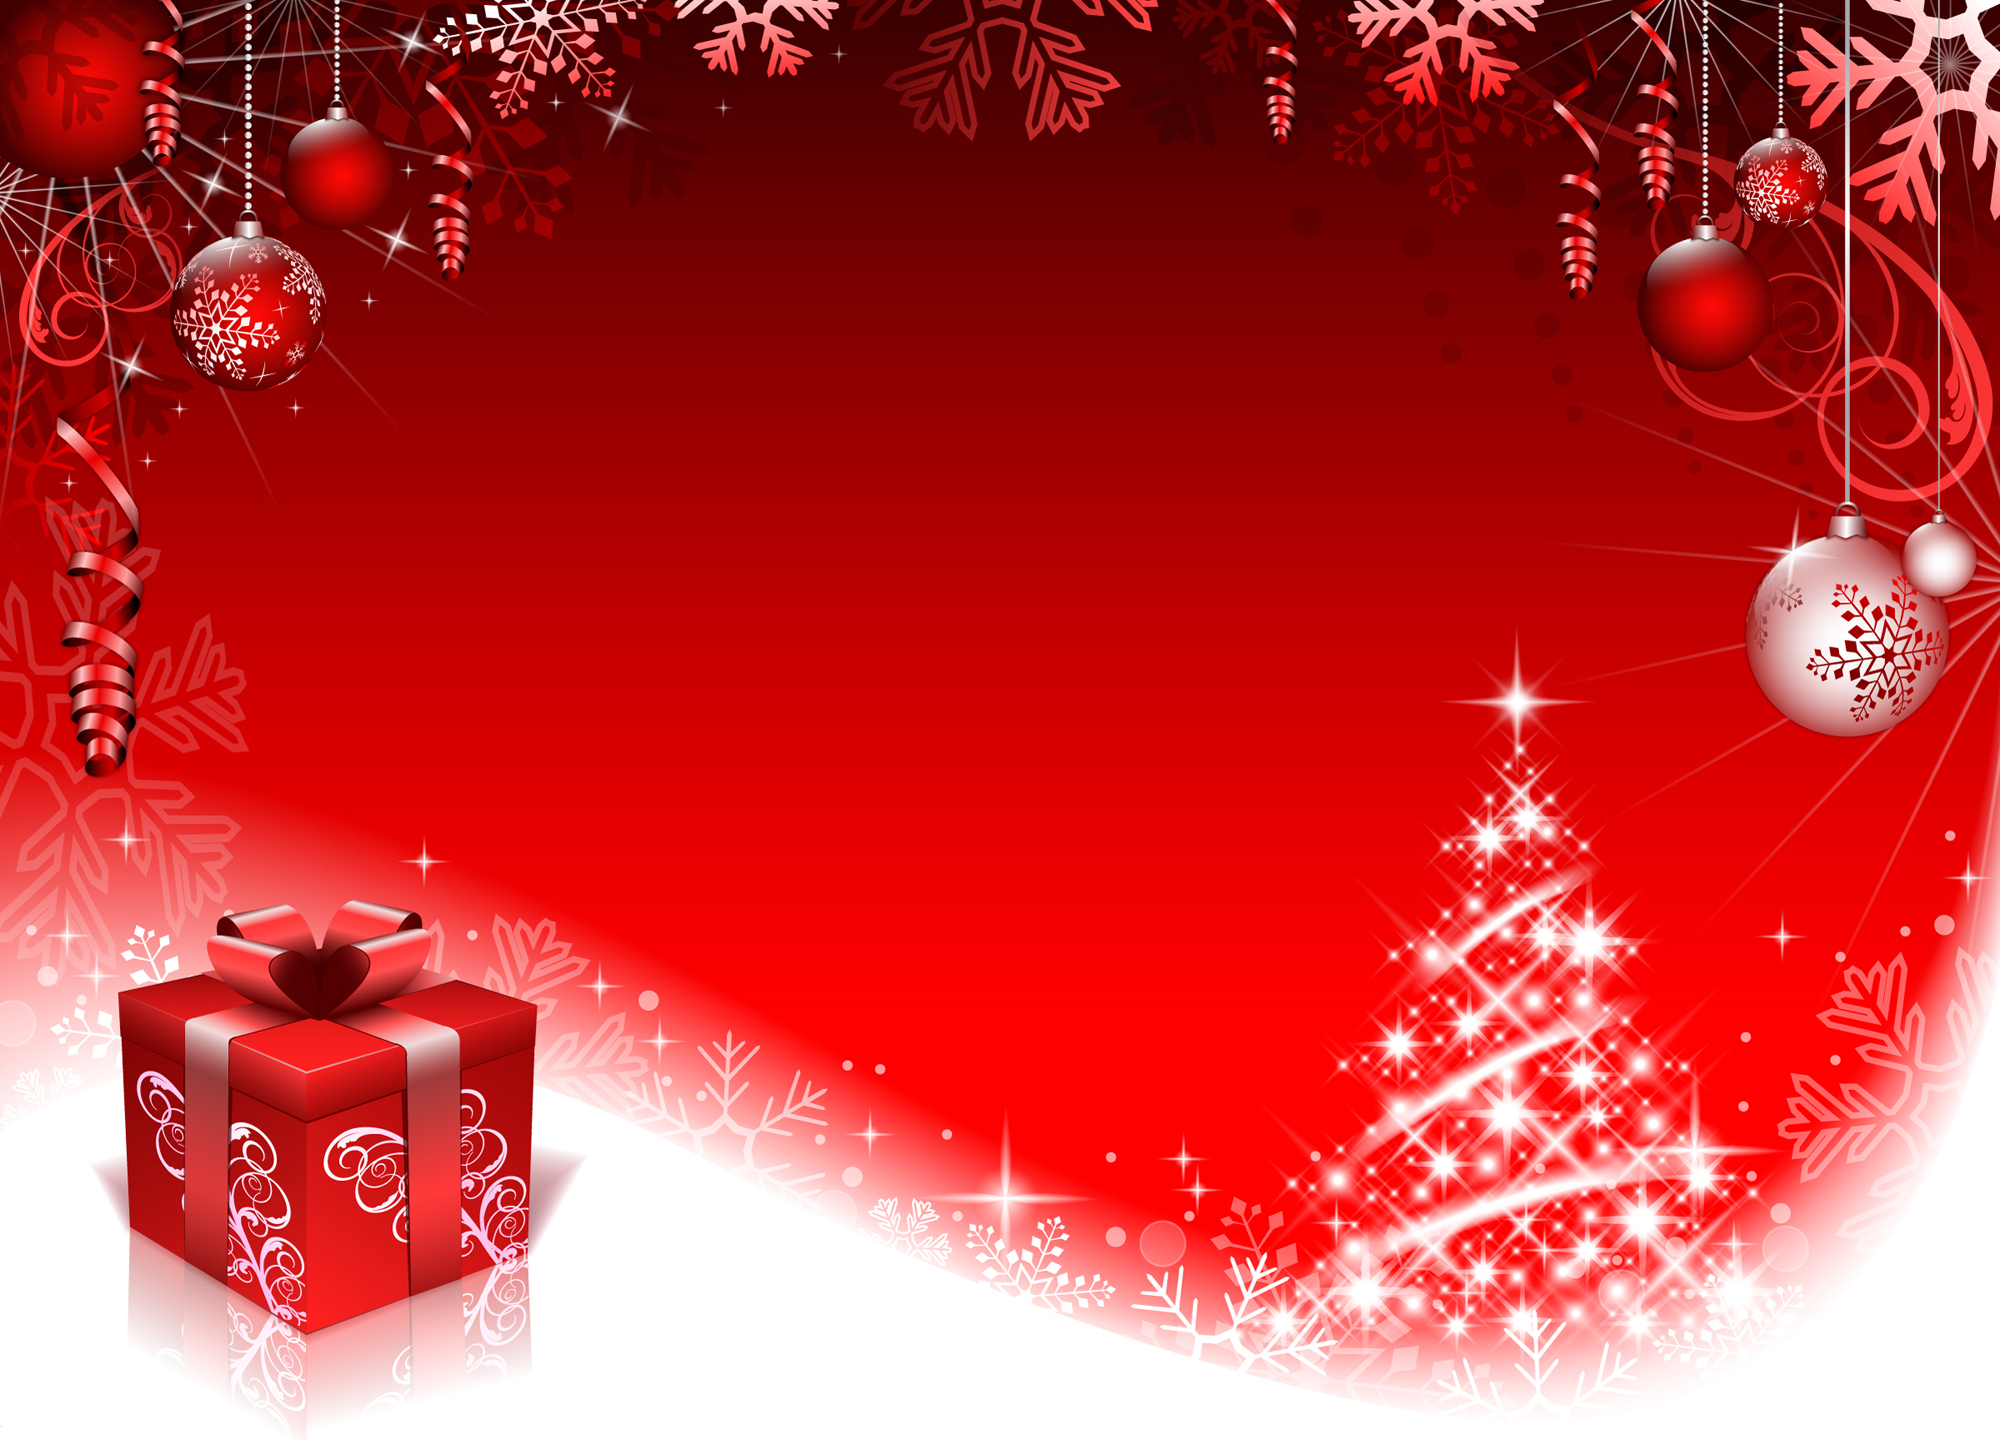 2000x1440 Red Style Christmas Background Art Vector 01 Free Download